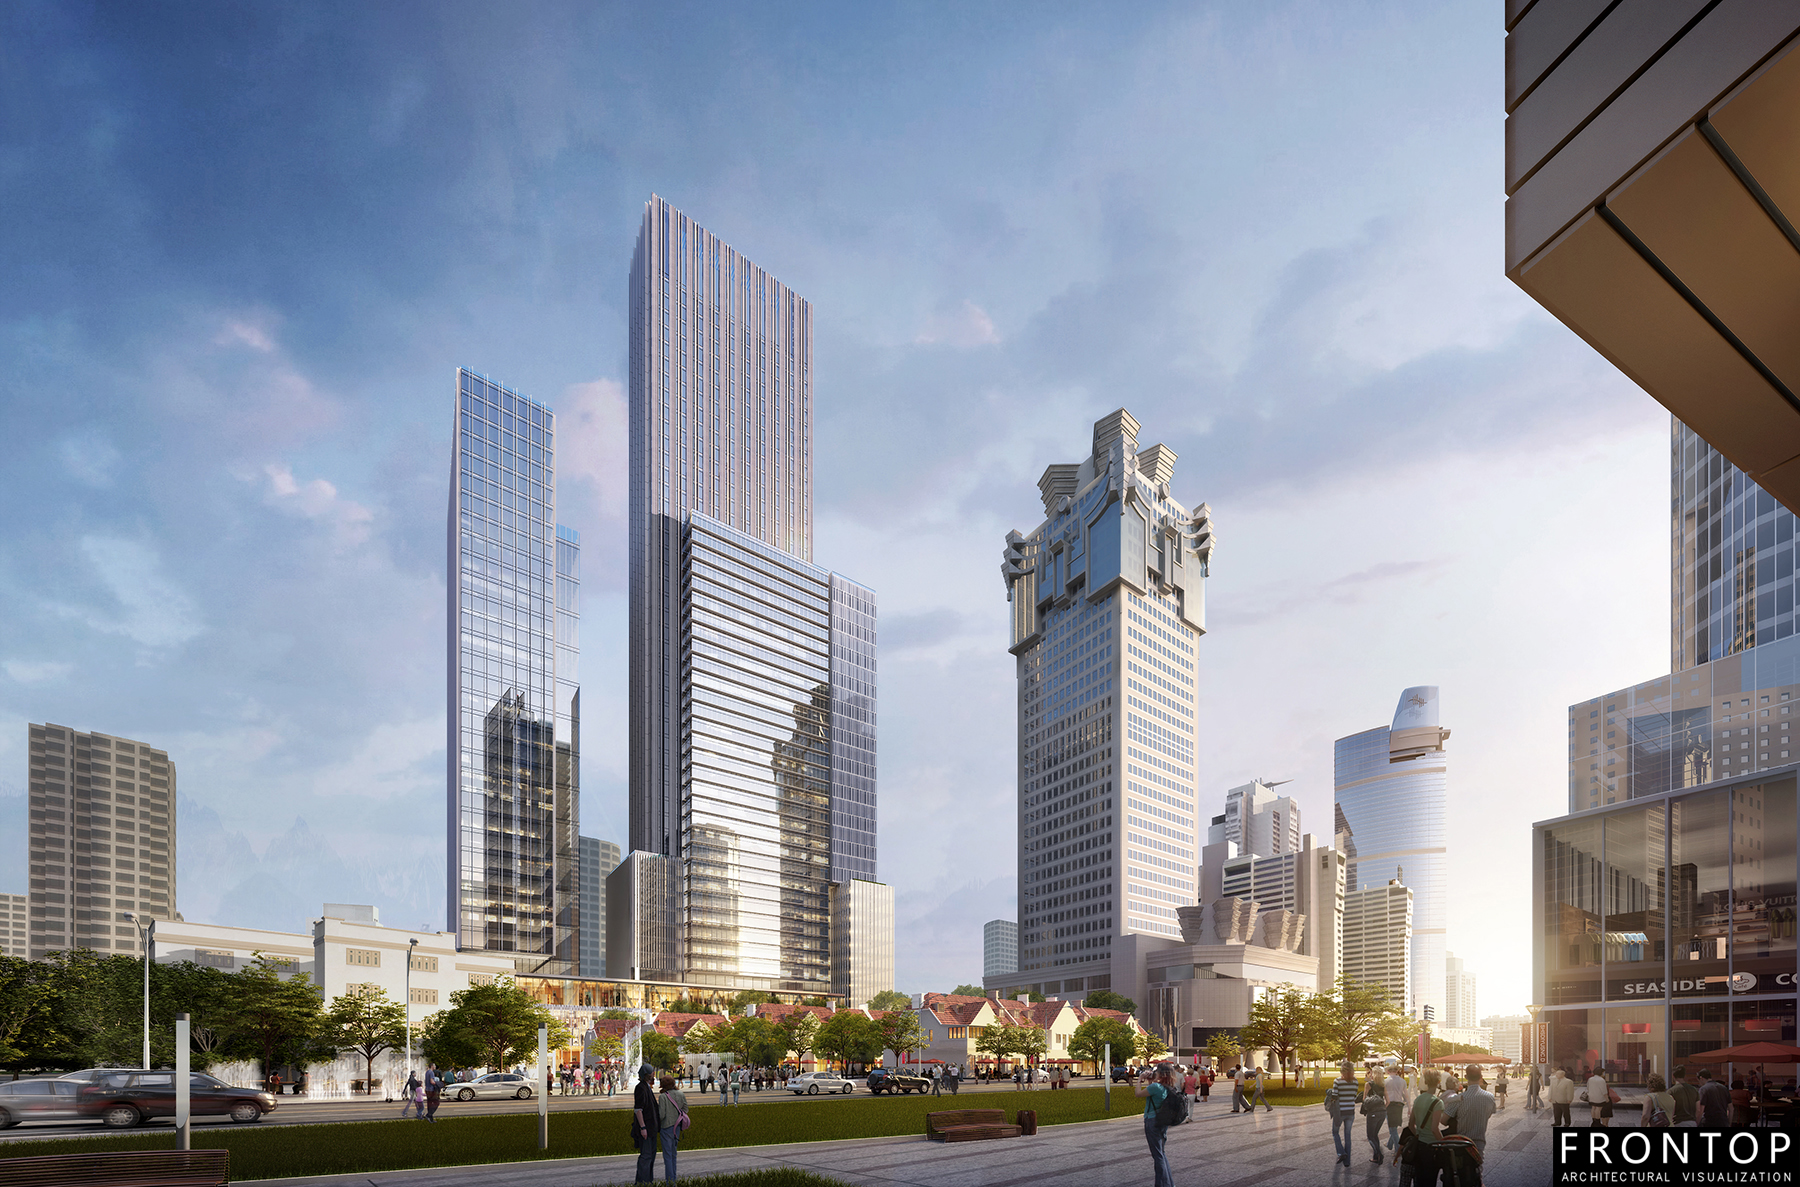 No. 1486 plot project of Nanjing West Road Featured Image